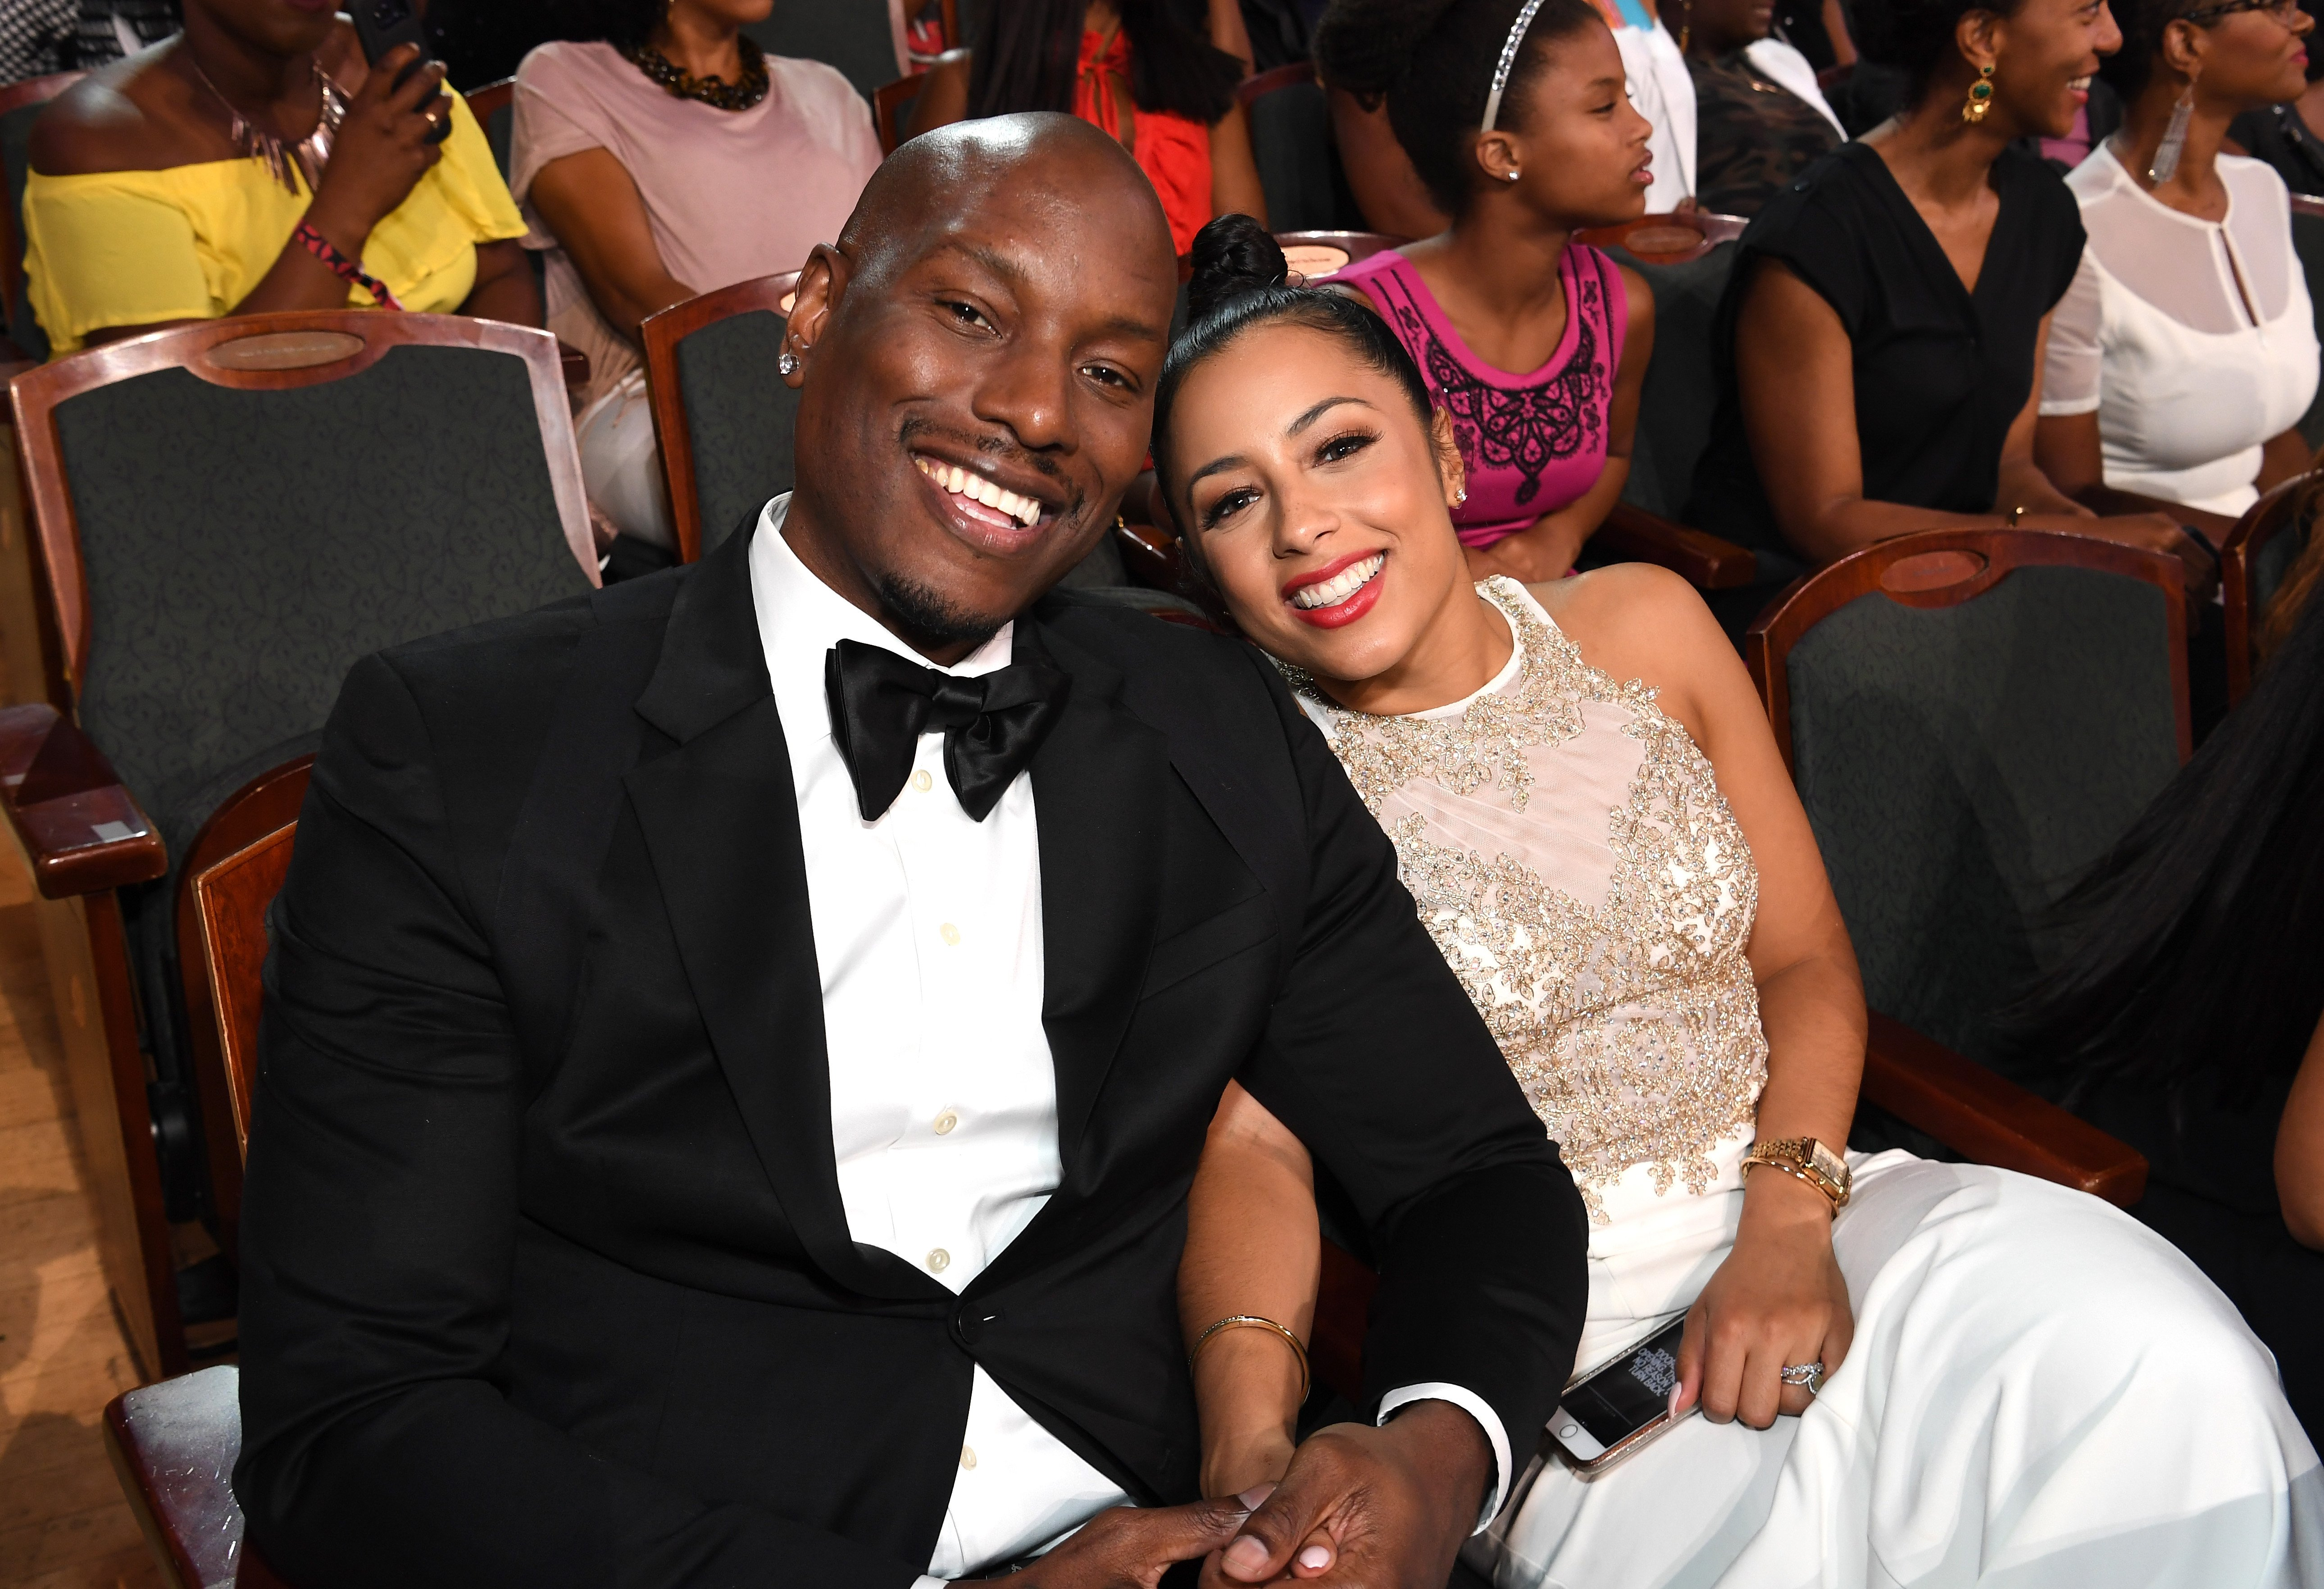 Tyrese Gibson & Samantha Lee Gibson at Black Girls Rock! on Aug. 5, 2017 in New Jersey | Photo: Getty Images